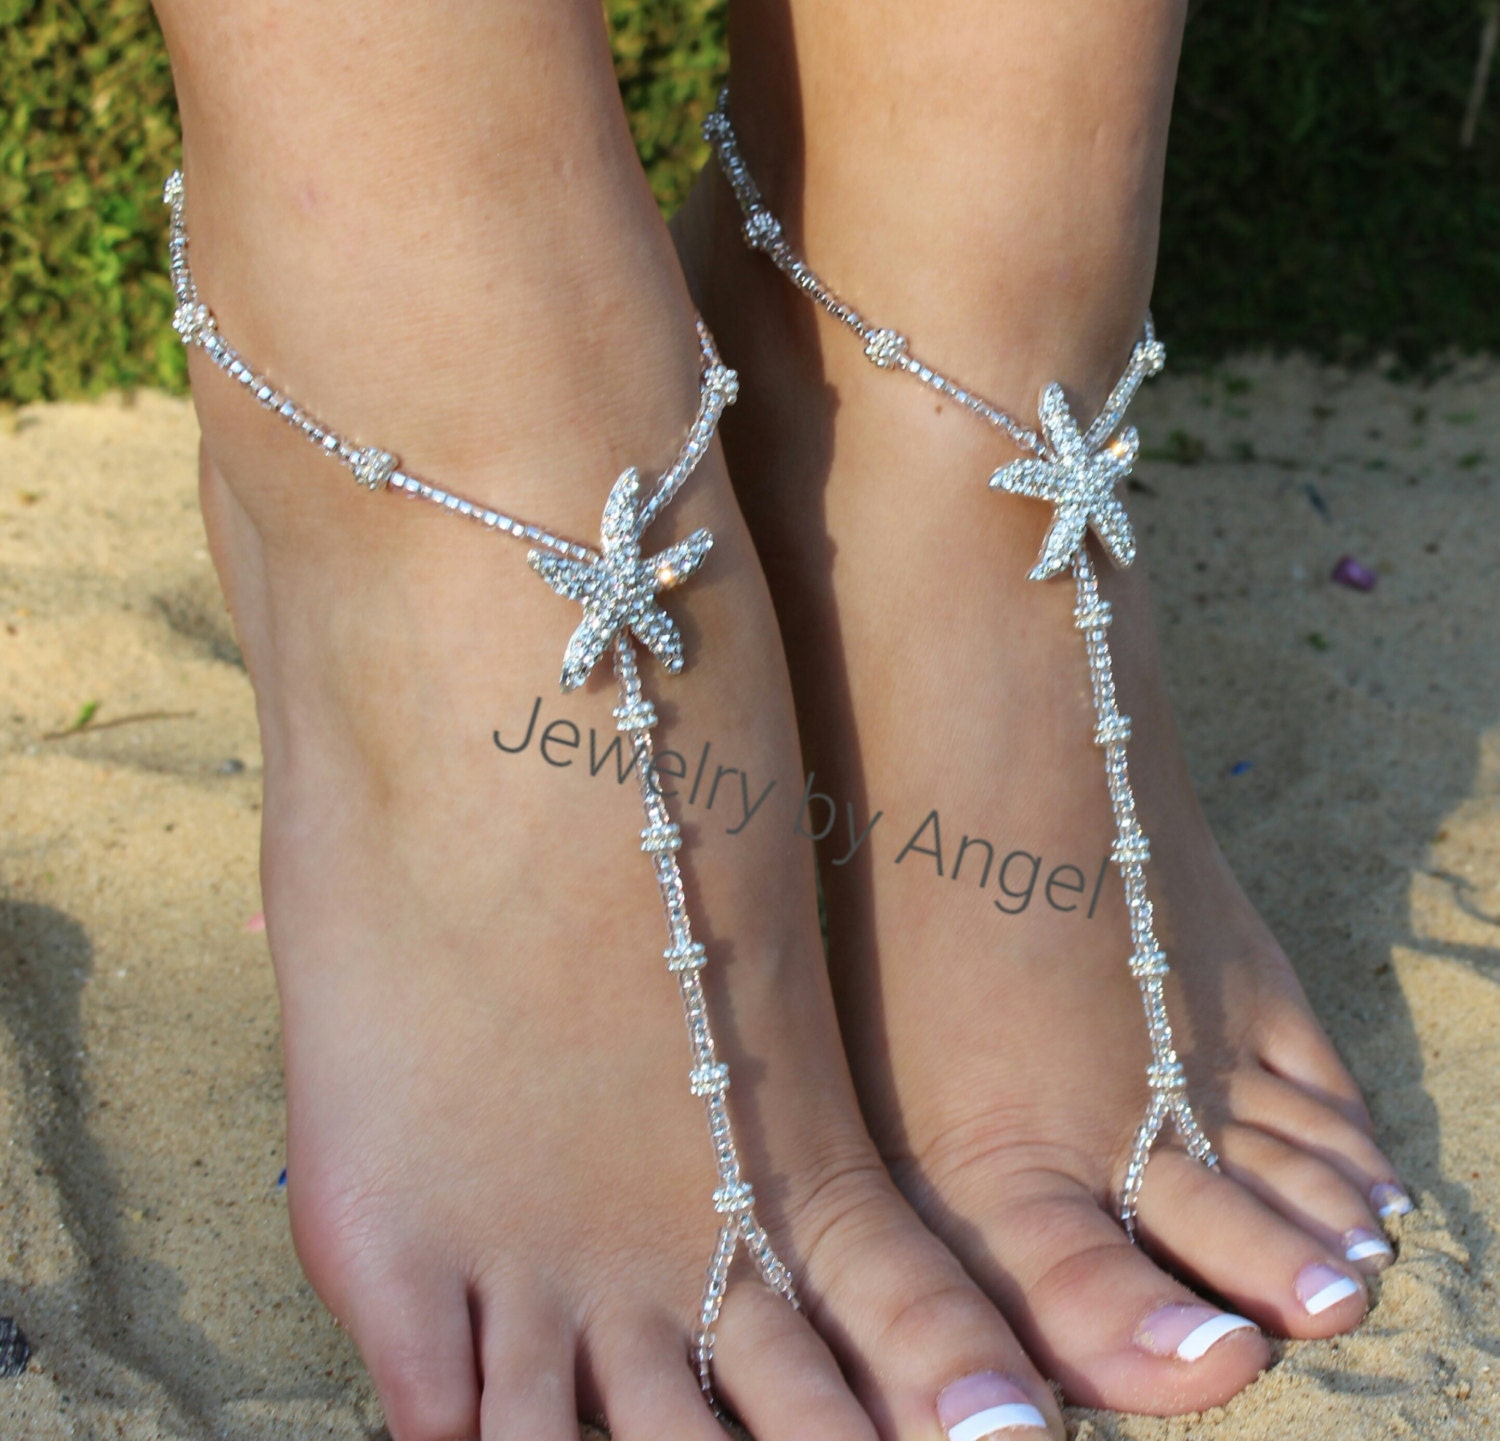 jewelry starfish barefoot gift foot rose gold personalized anklet wedding sandals pin unique